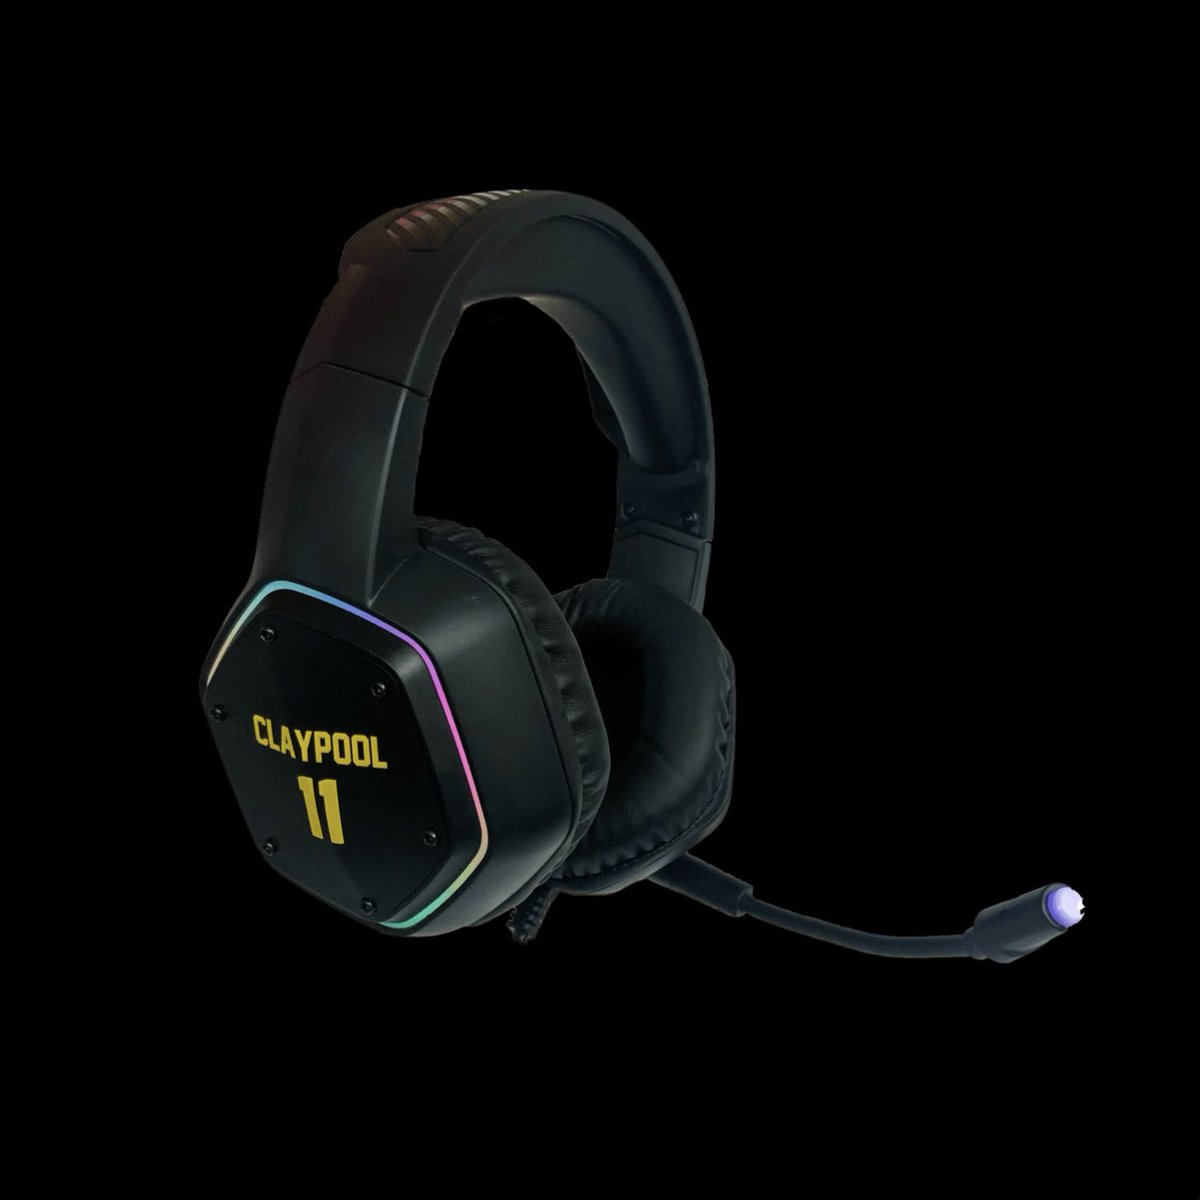 I dropped my own custom GAMING HEADSET and I'm giving away an Xbox Series X to celebrate the drop!  Anyone who gets my headset or retweets this will have a chance to win: ➡️